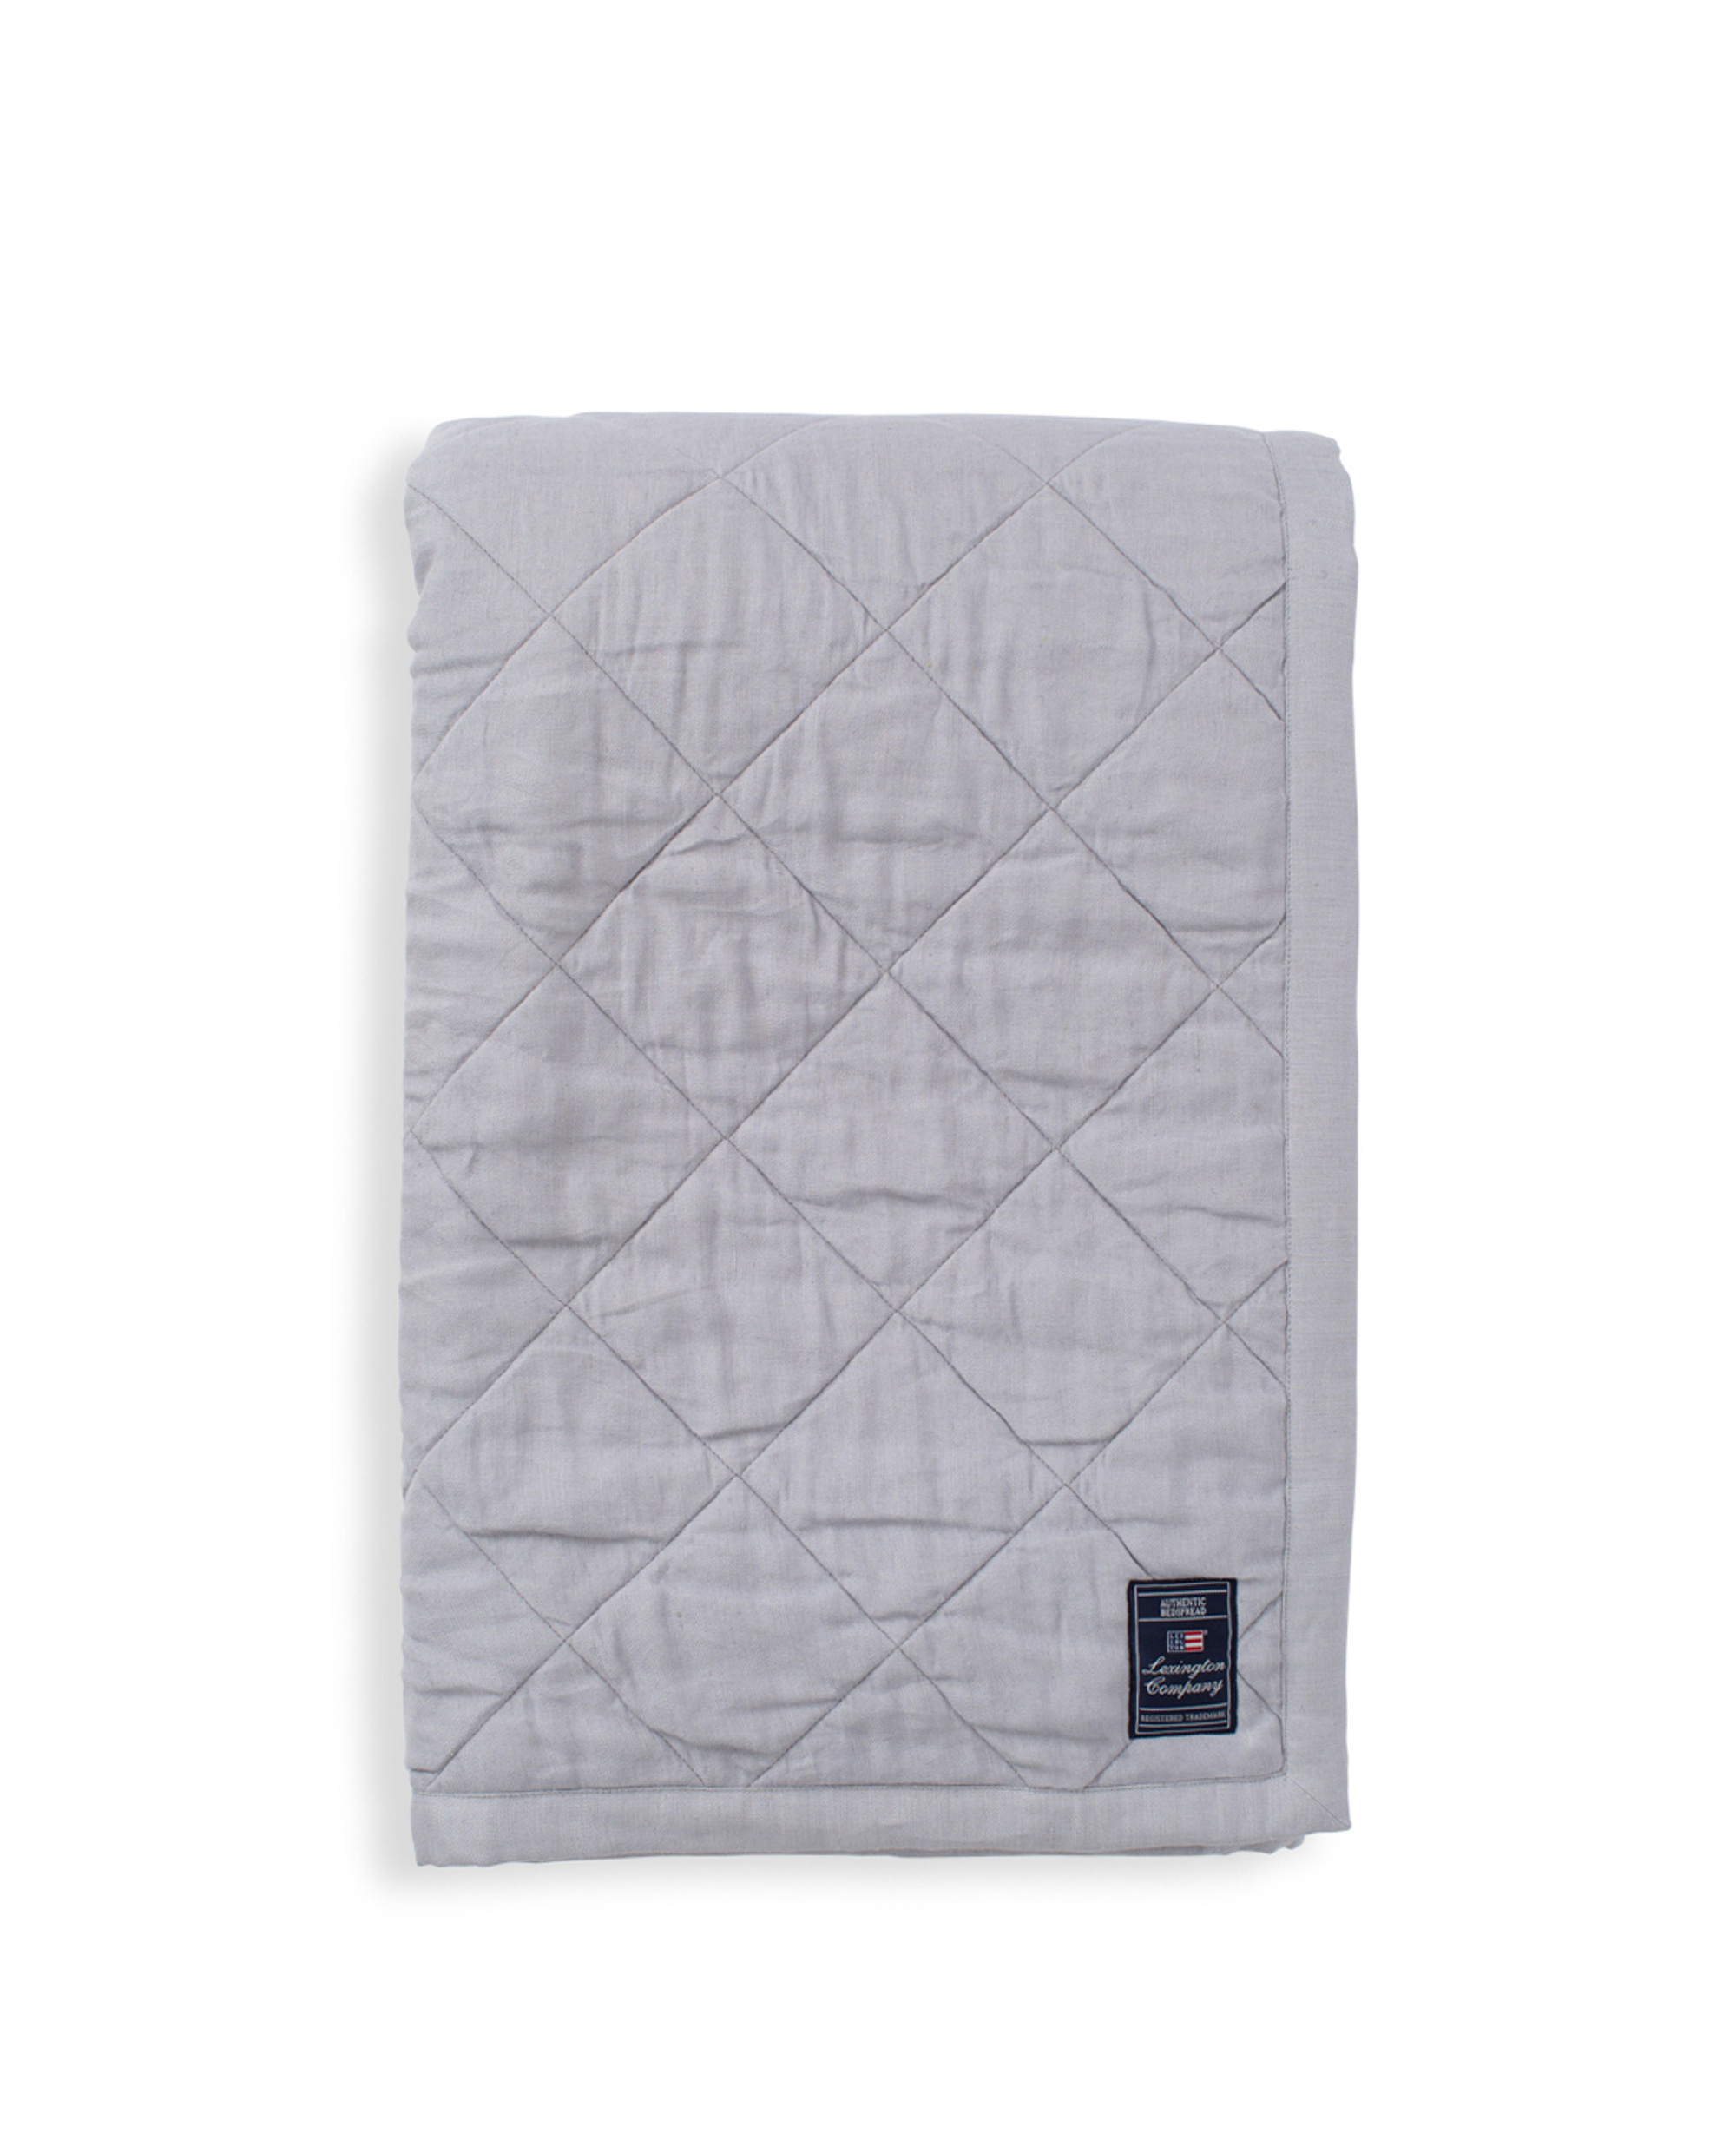 Quilted Linen/Viscose Bedspread, Light Gray